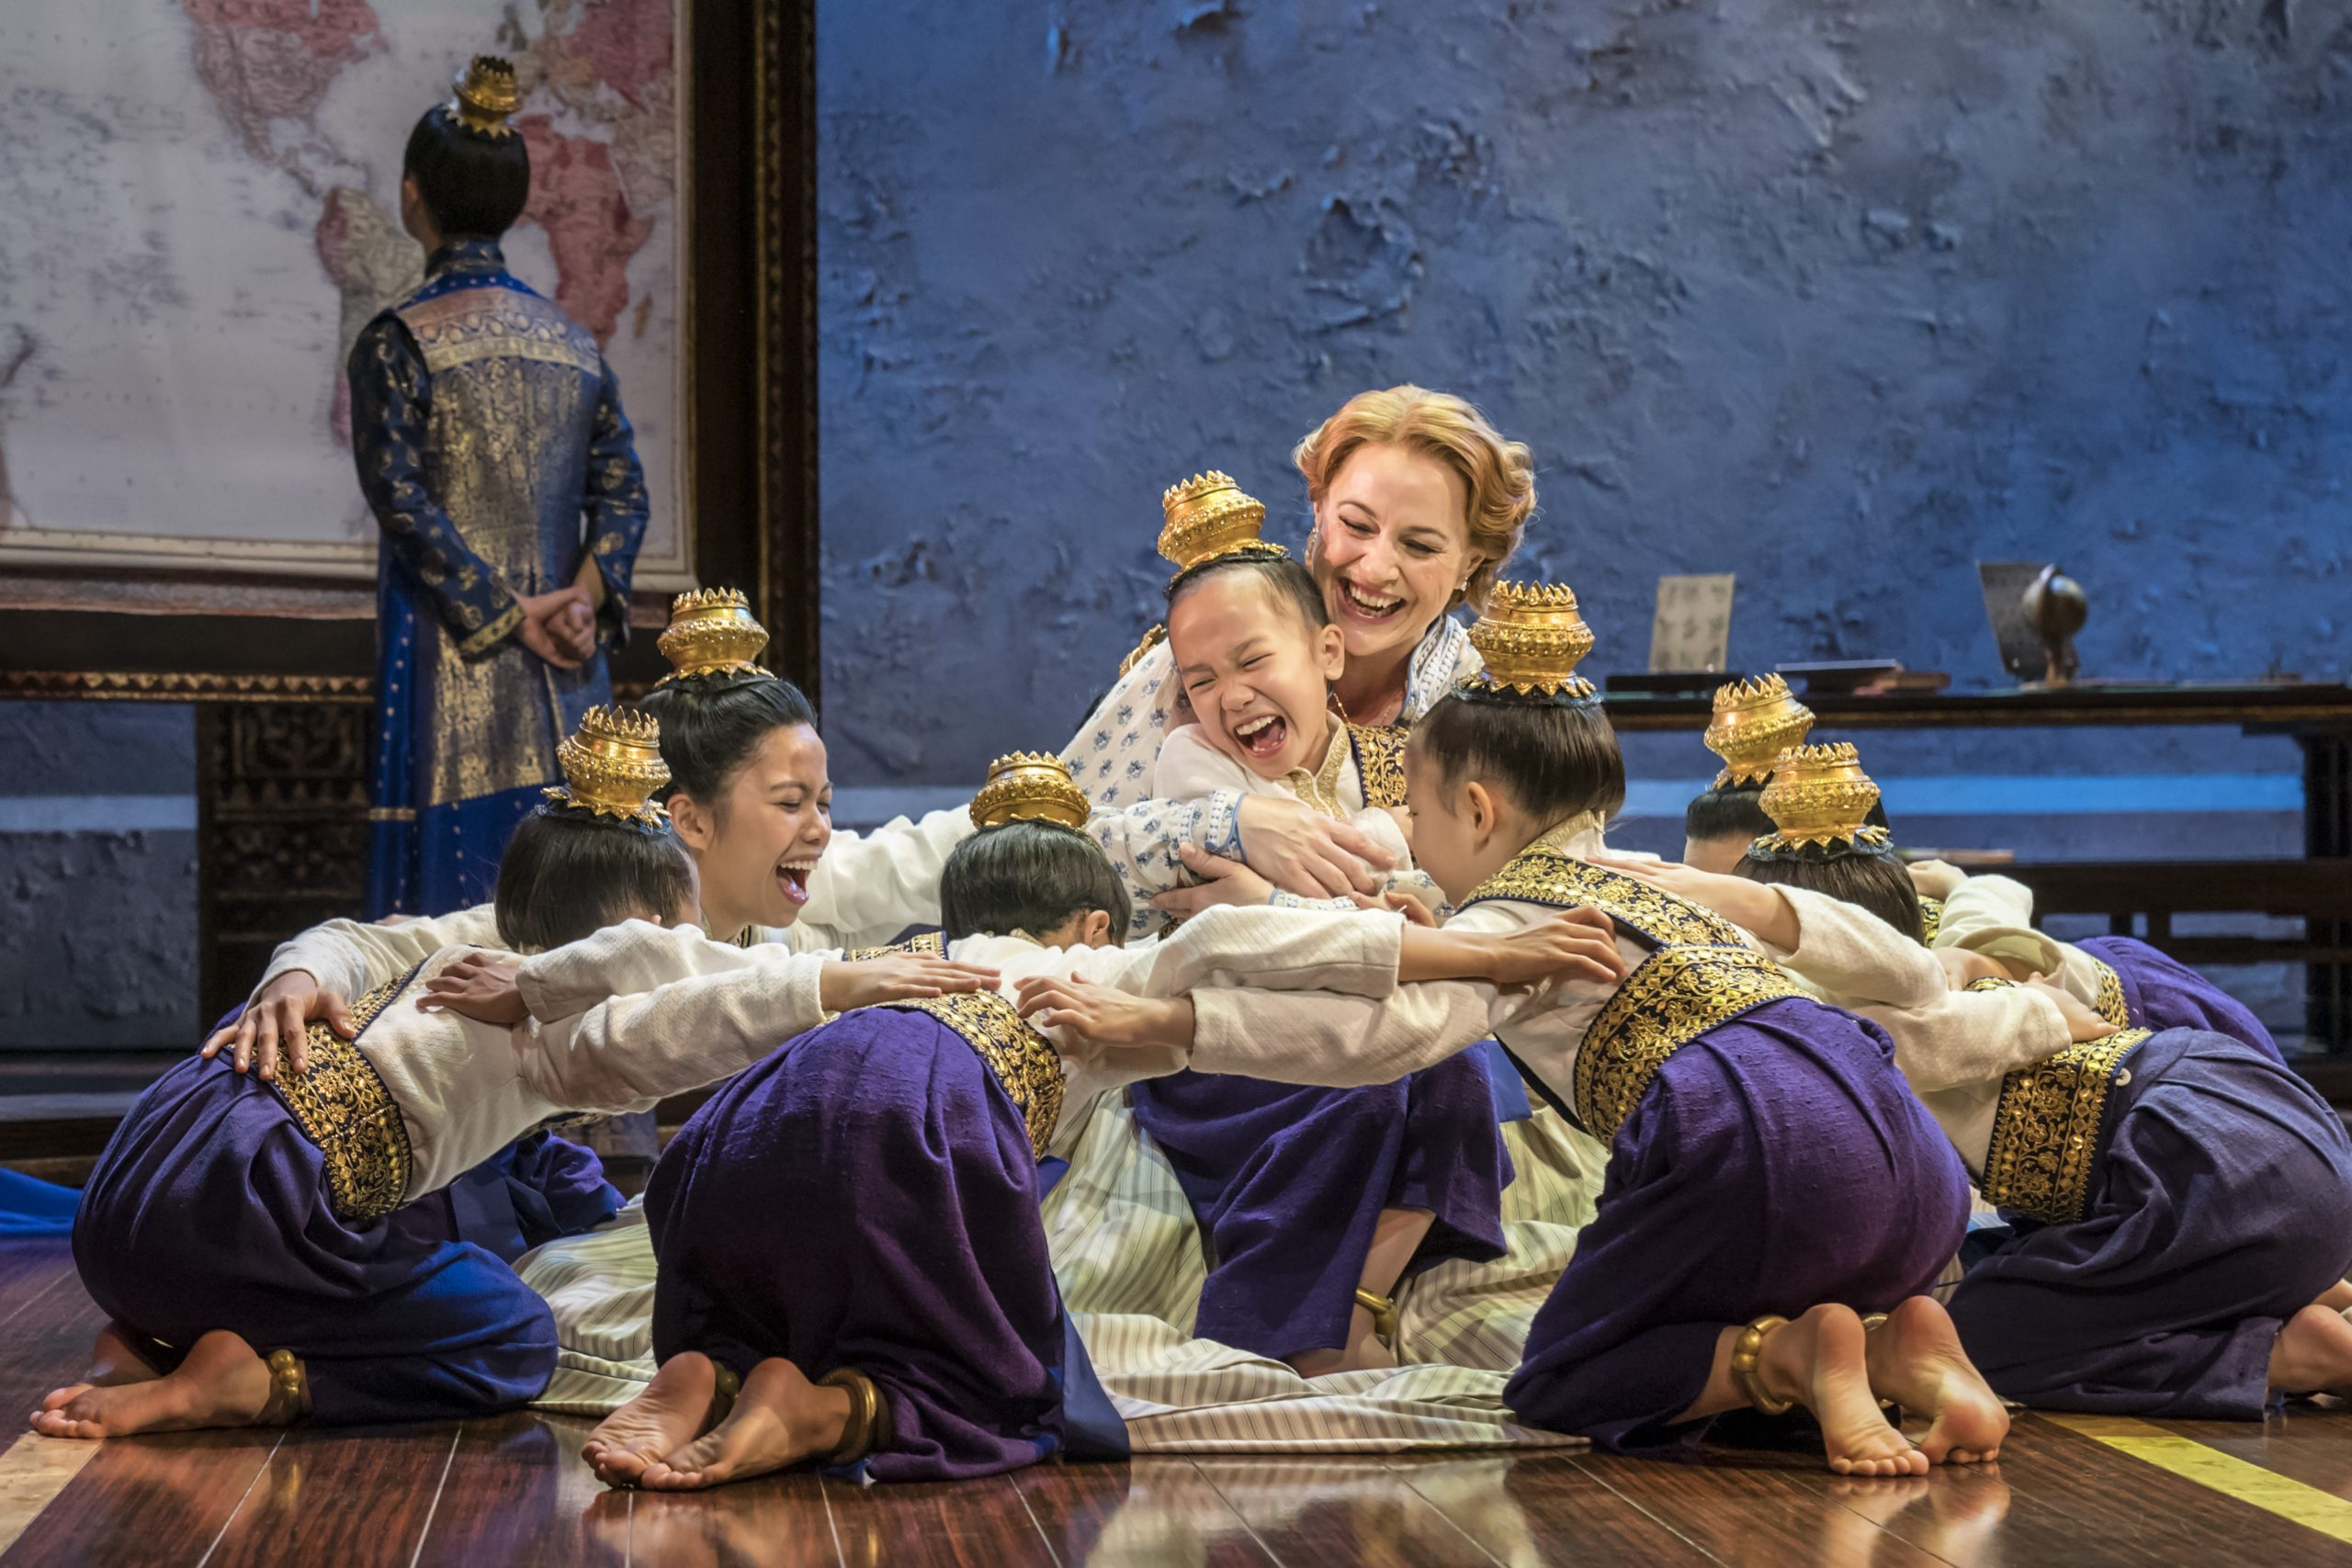 Annalene Beechey (Anna) surrounded by the King's children in Bartlett Sher's interpretation of Rodgers' & Hammerstein's classic musical, The King and I.